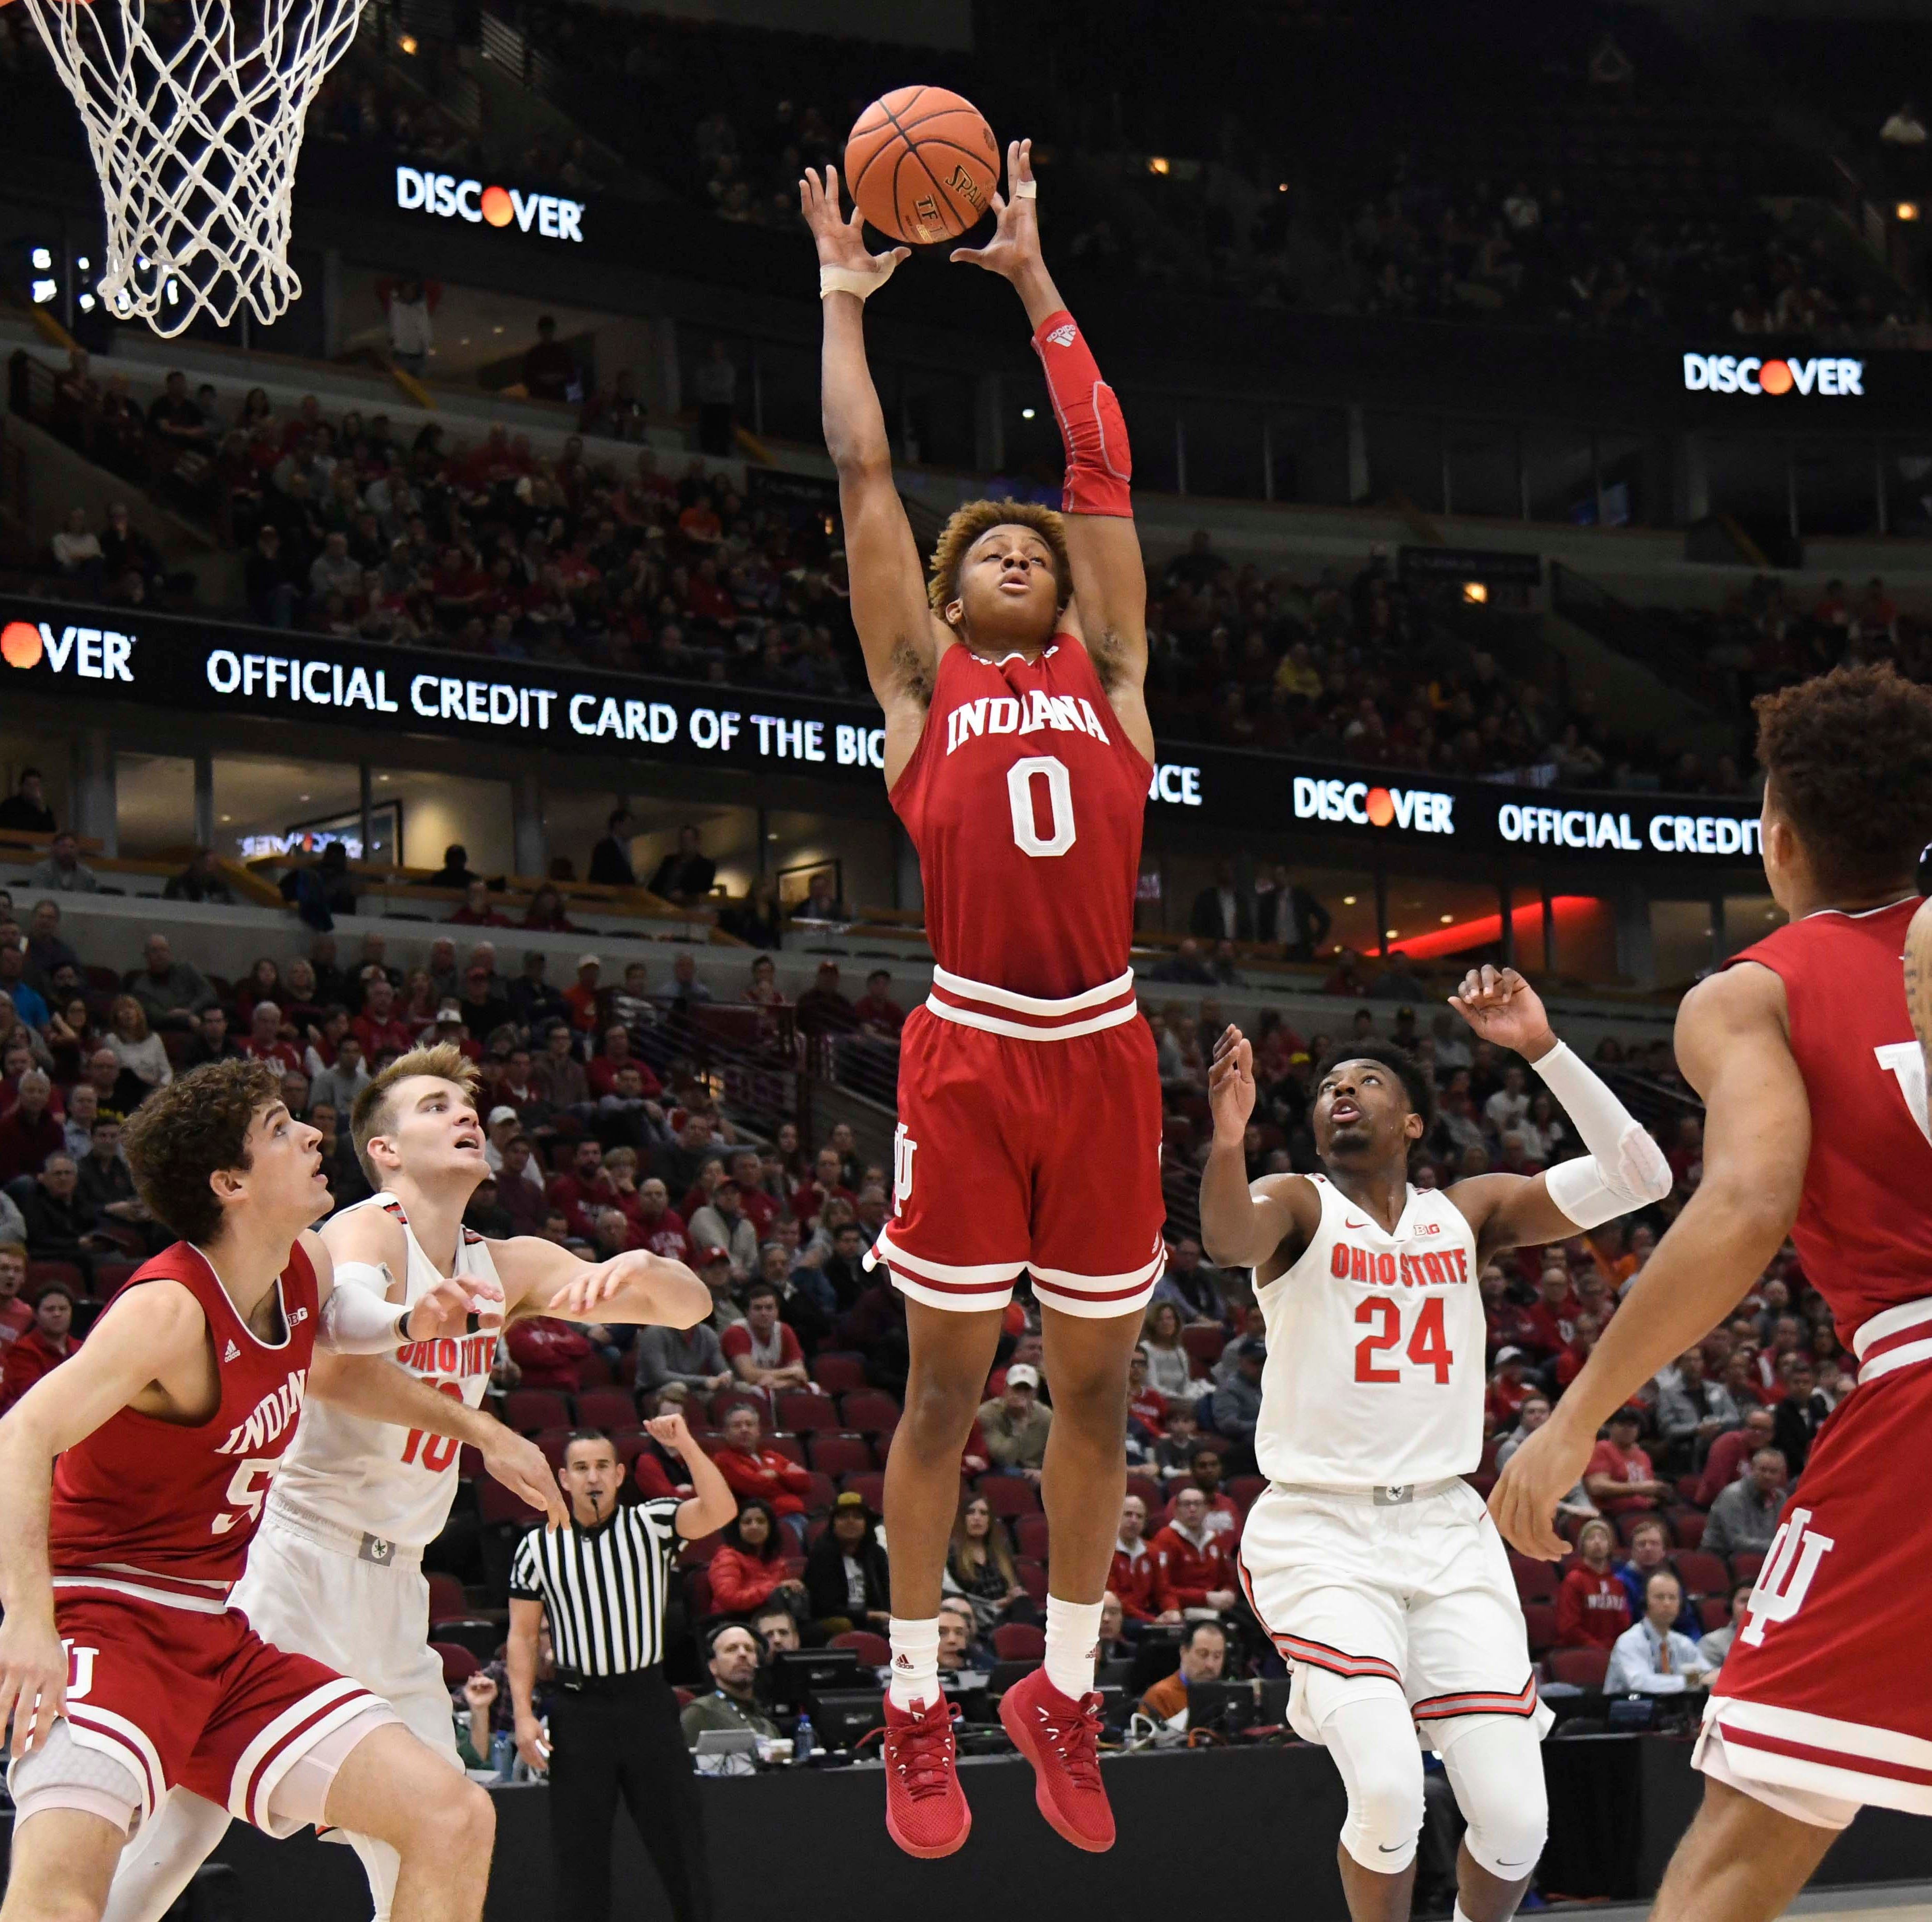 NBA mock draft 2019: Where IU basketball's Romeo Langford will be picked